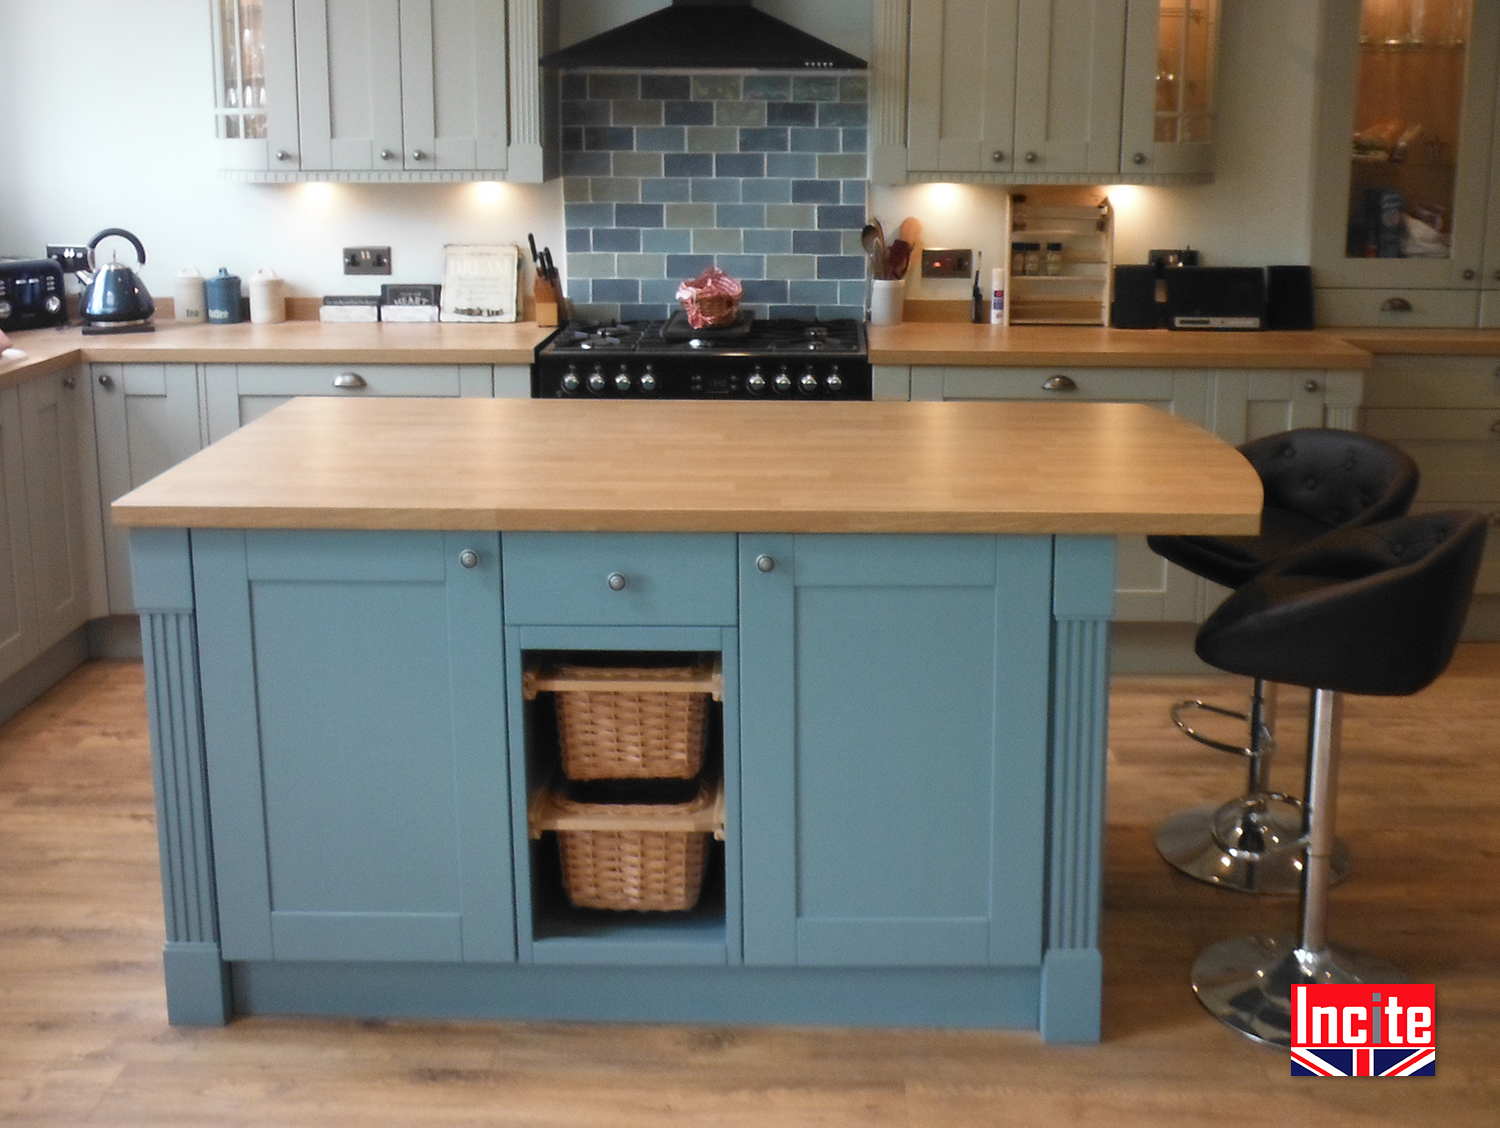 Bespoke custom made painted fitted kitchens incite derby for Fitted kitchen dresser unit